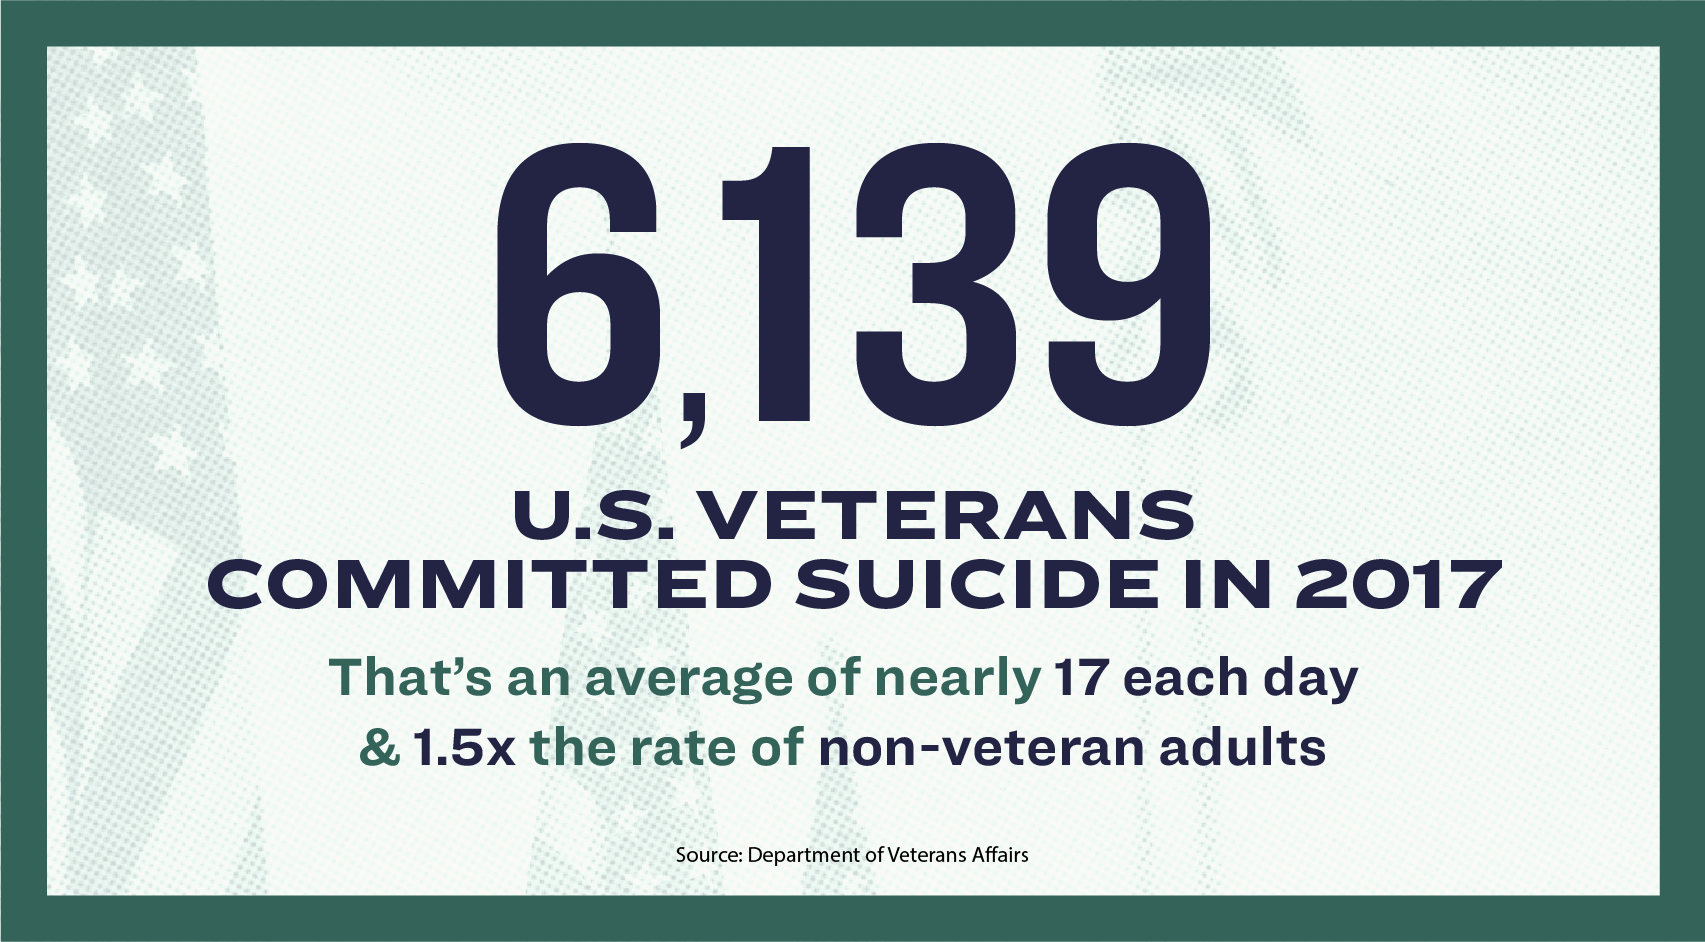 6,139 U.S. veterans committed suicide in 2017. That's an average of nearly 17 each day and 1.5x the rate of non-veterans.